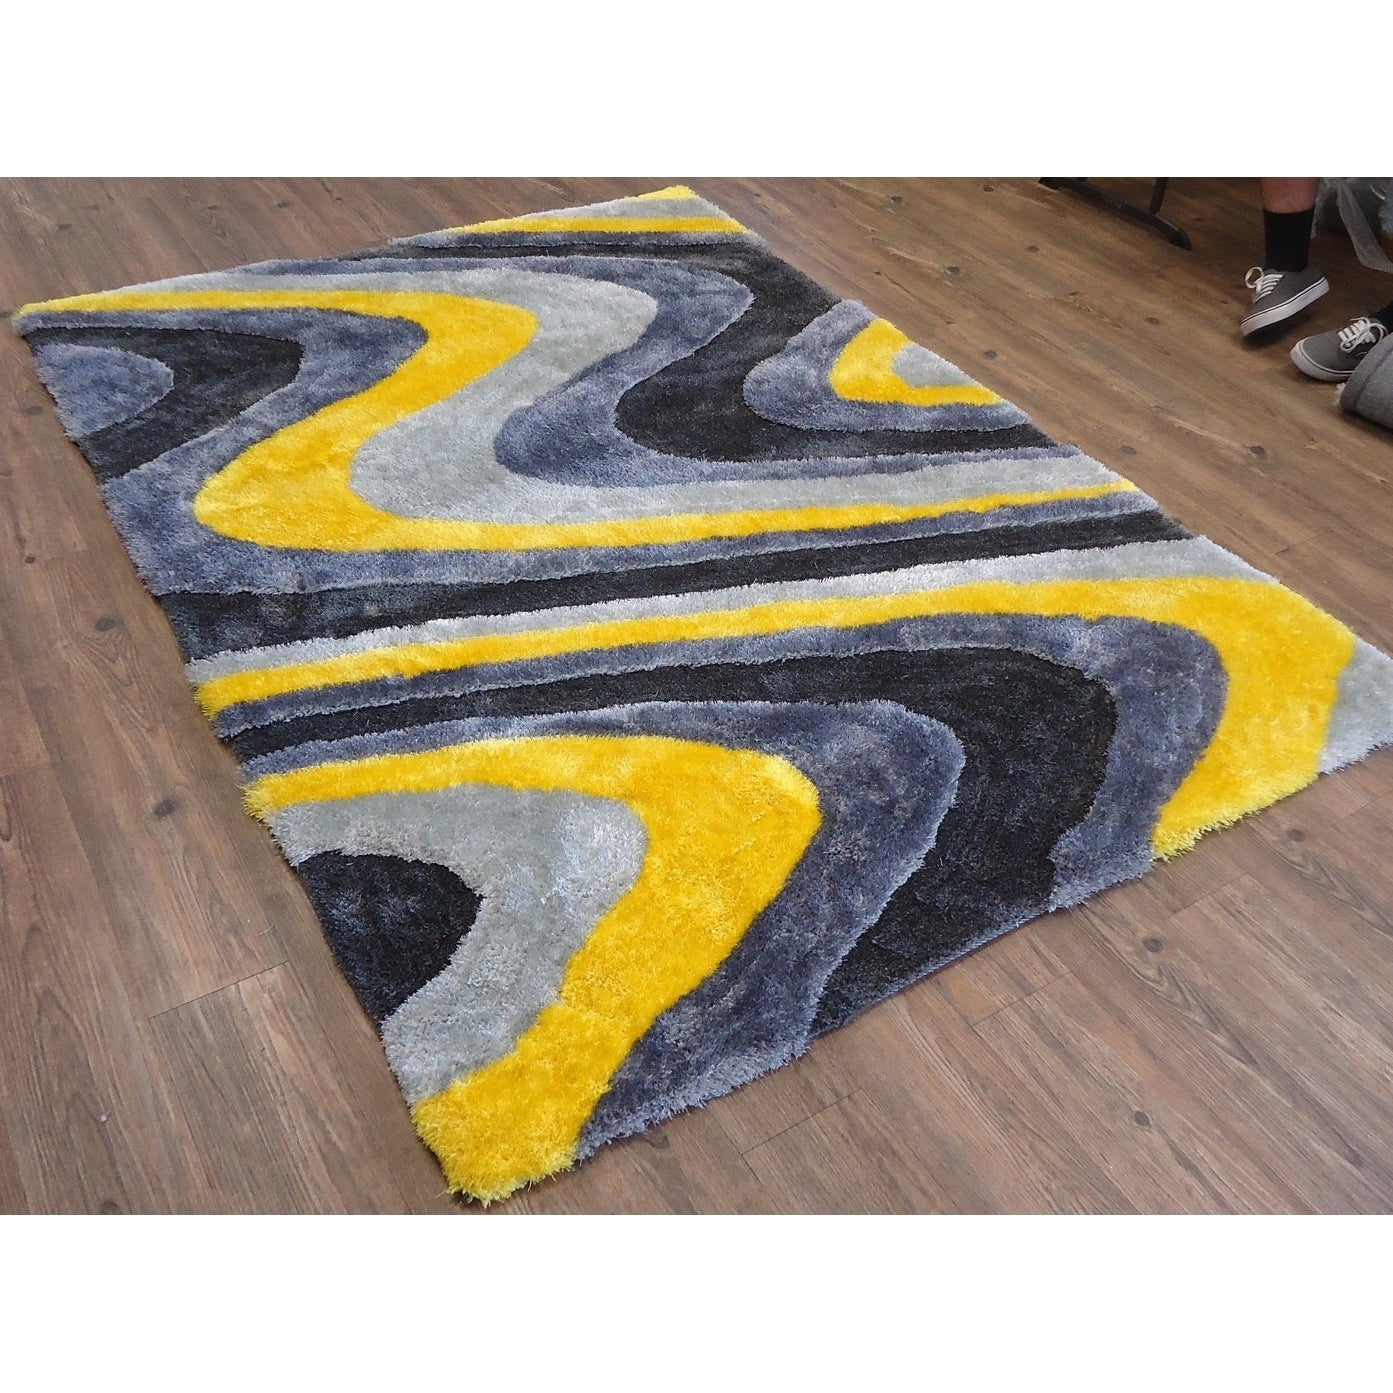 Shop Contemporary 5x7 Area Rug Gray Yellow 5 X 7 Overstock 25860662